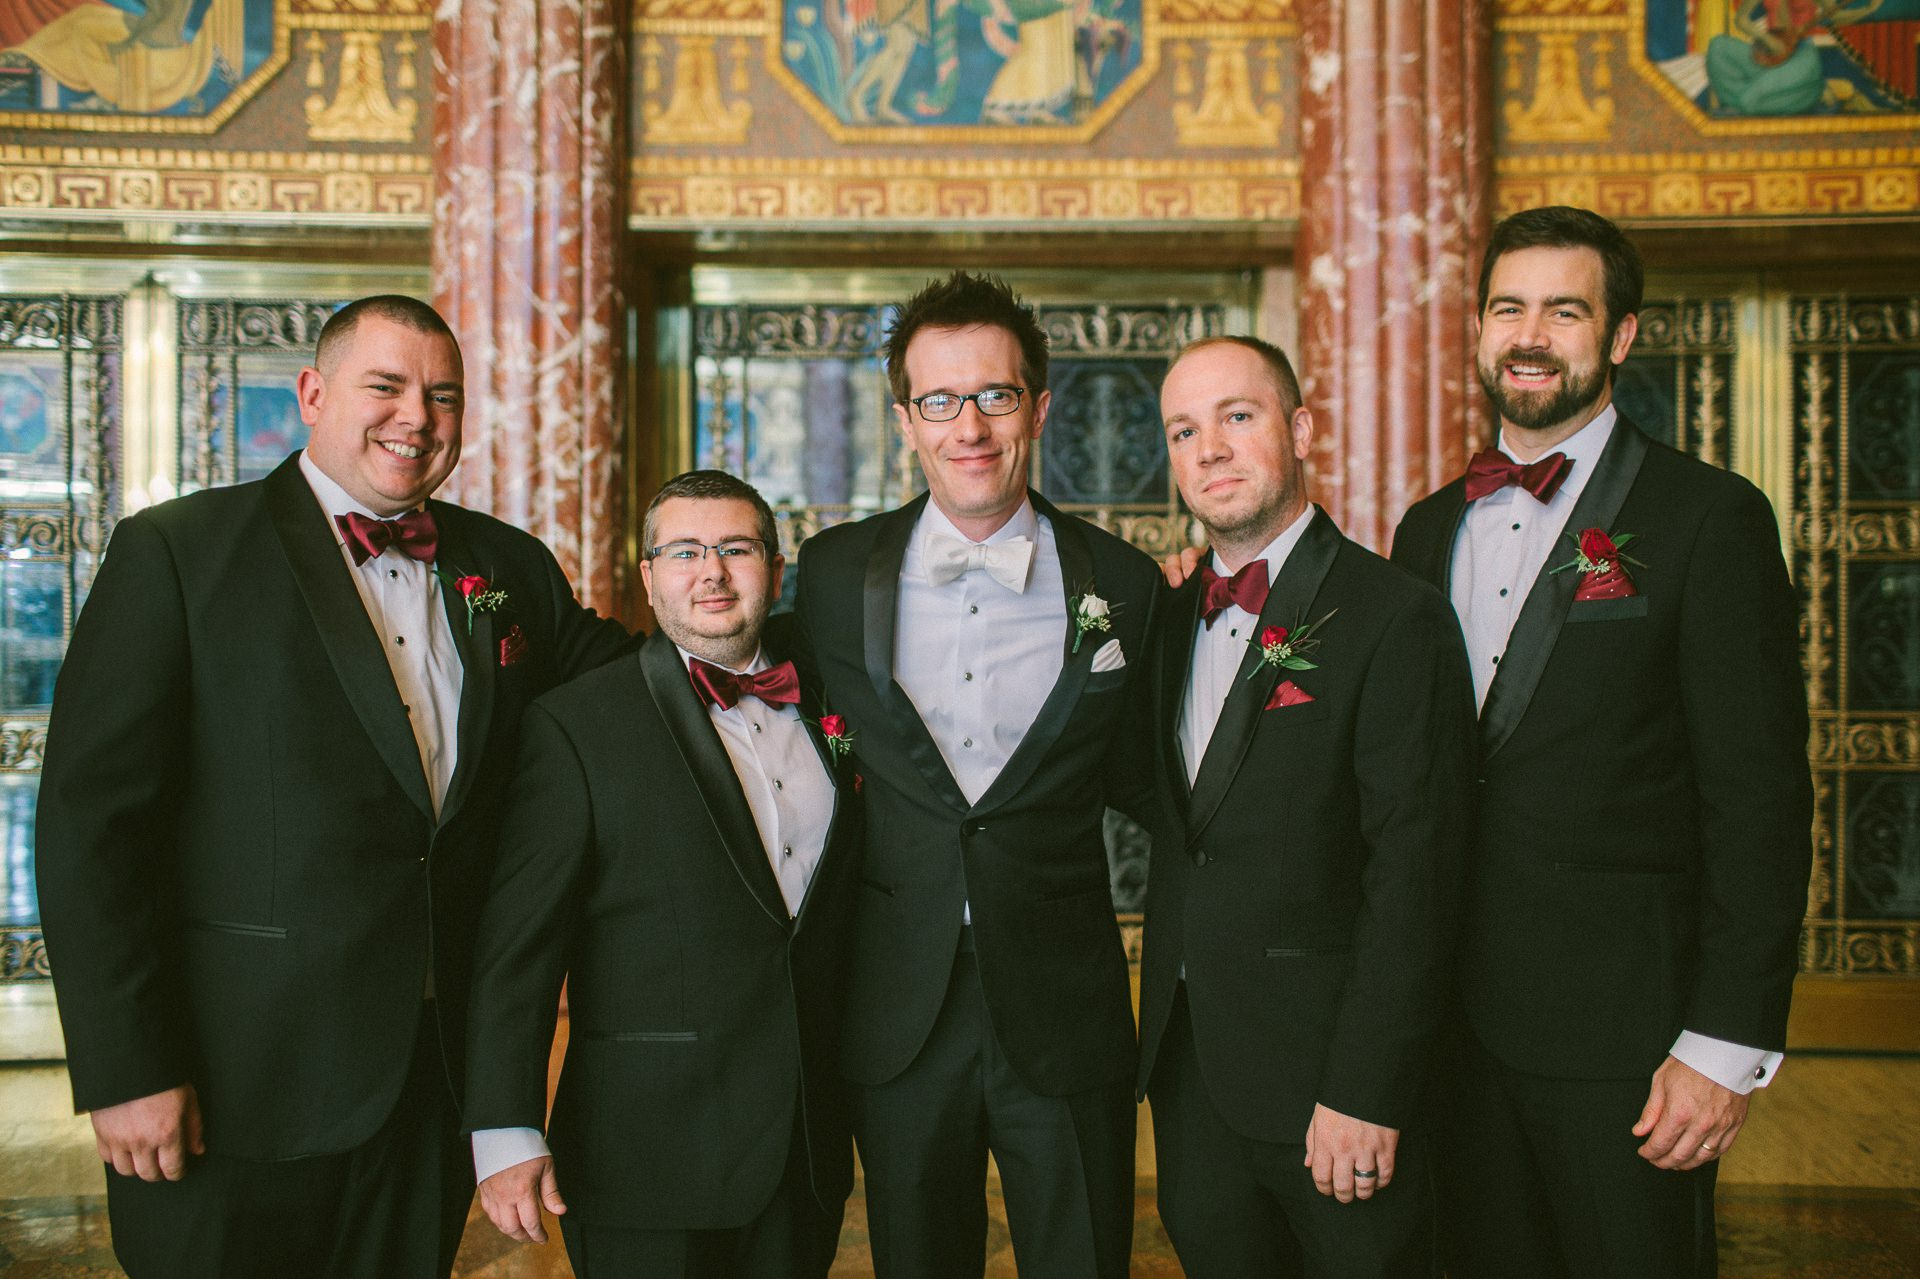 Cibreo Privato Wedding at Playhouse Square in Cleveland 1 30.jpg